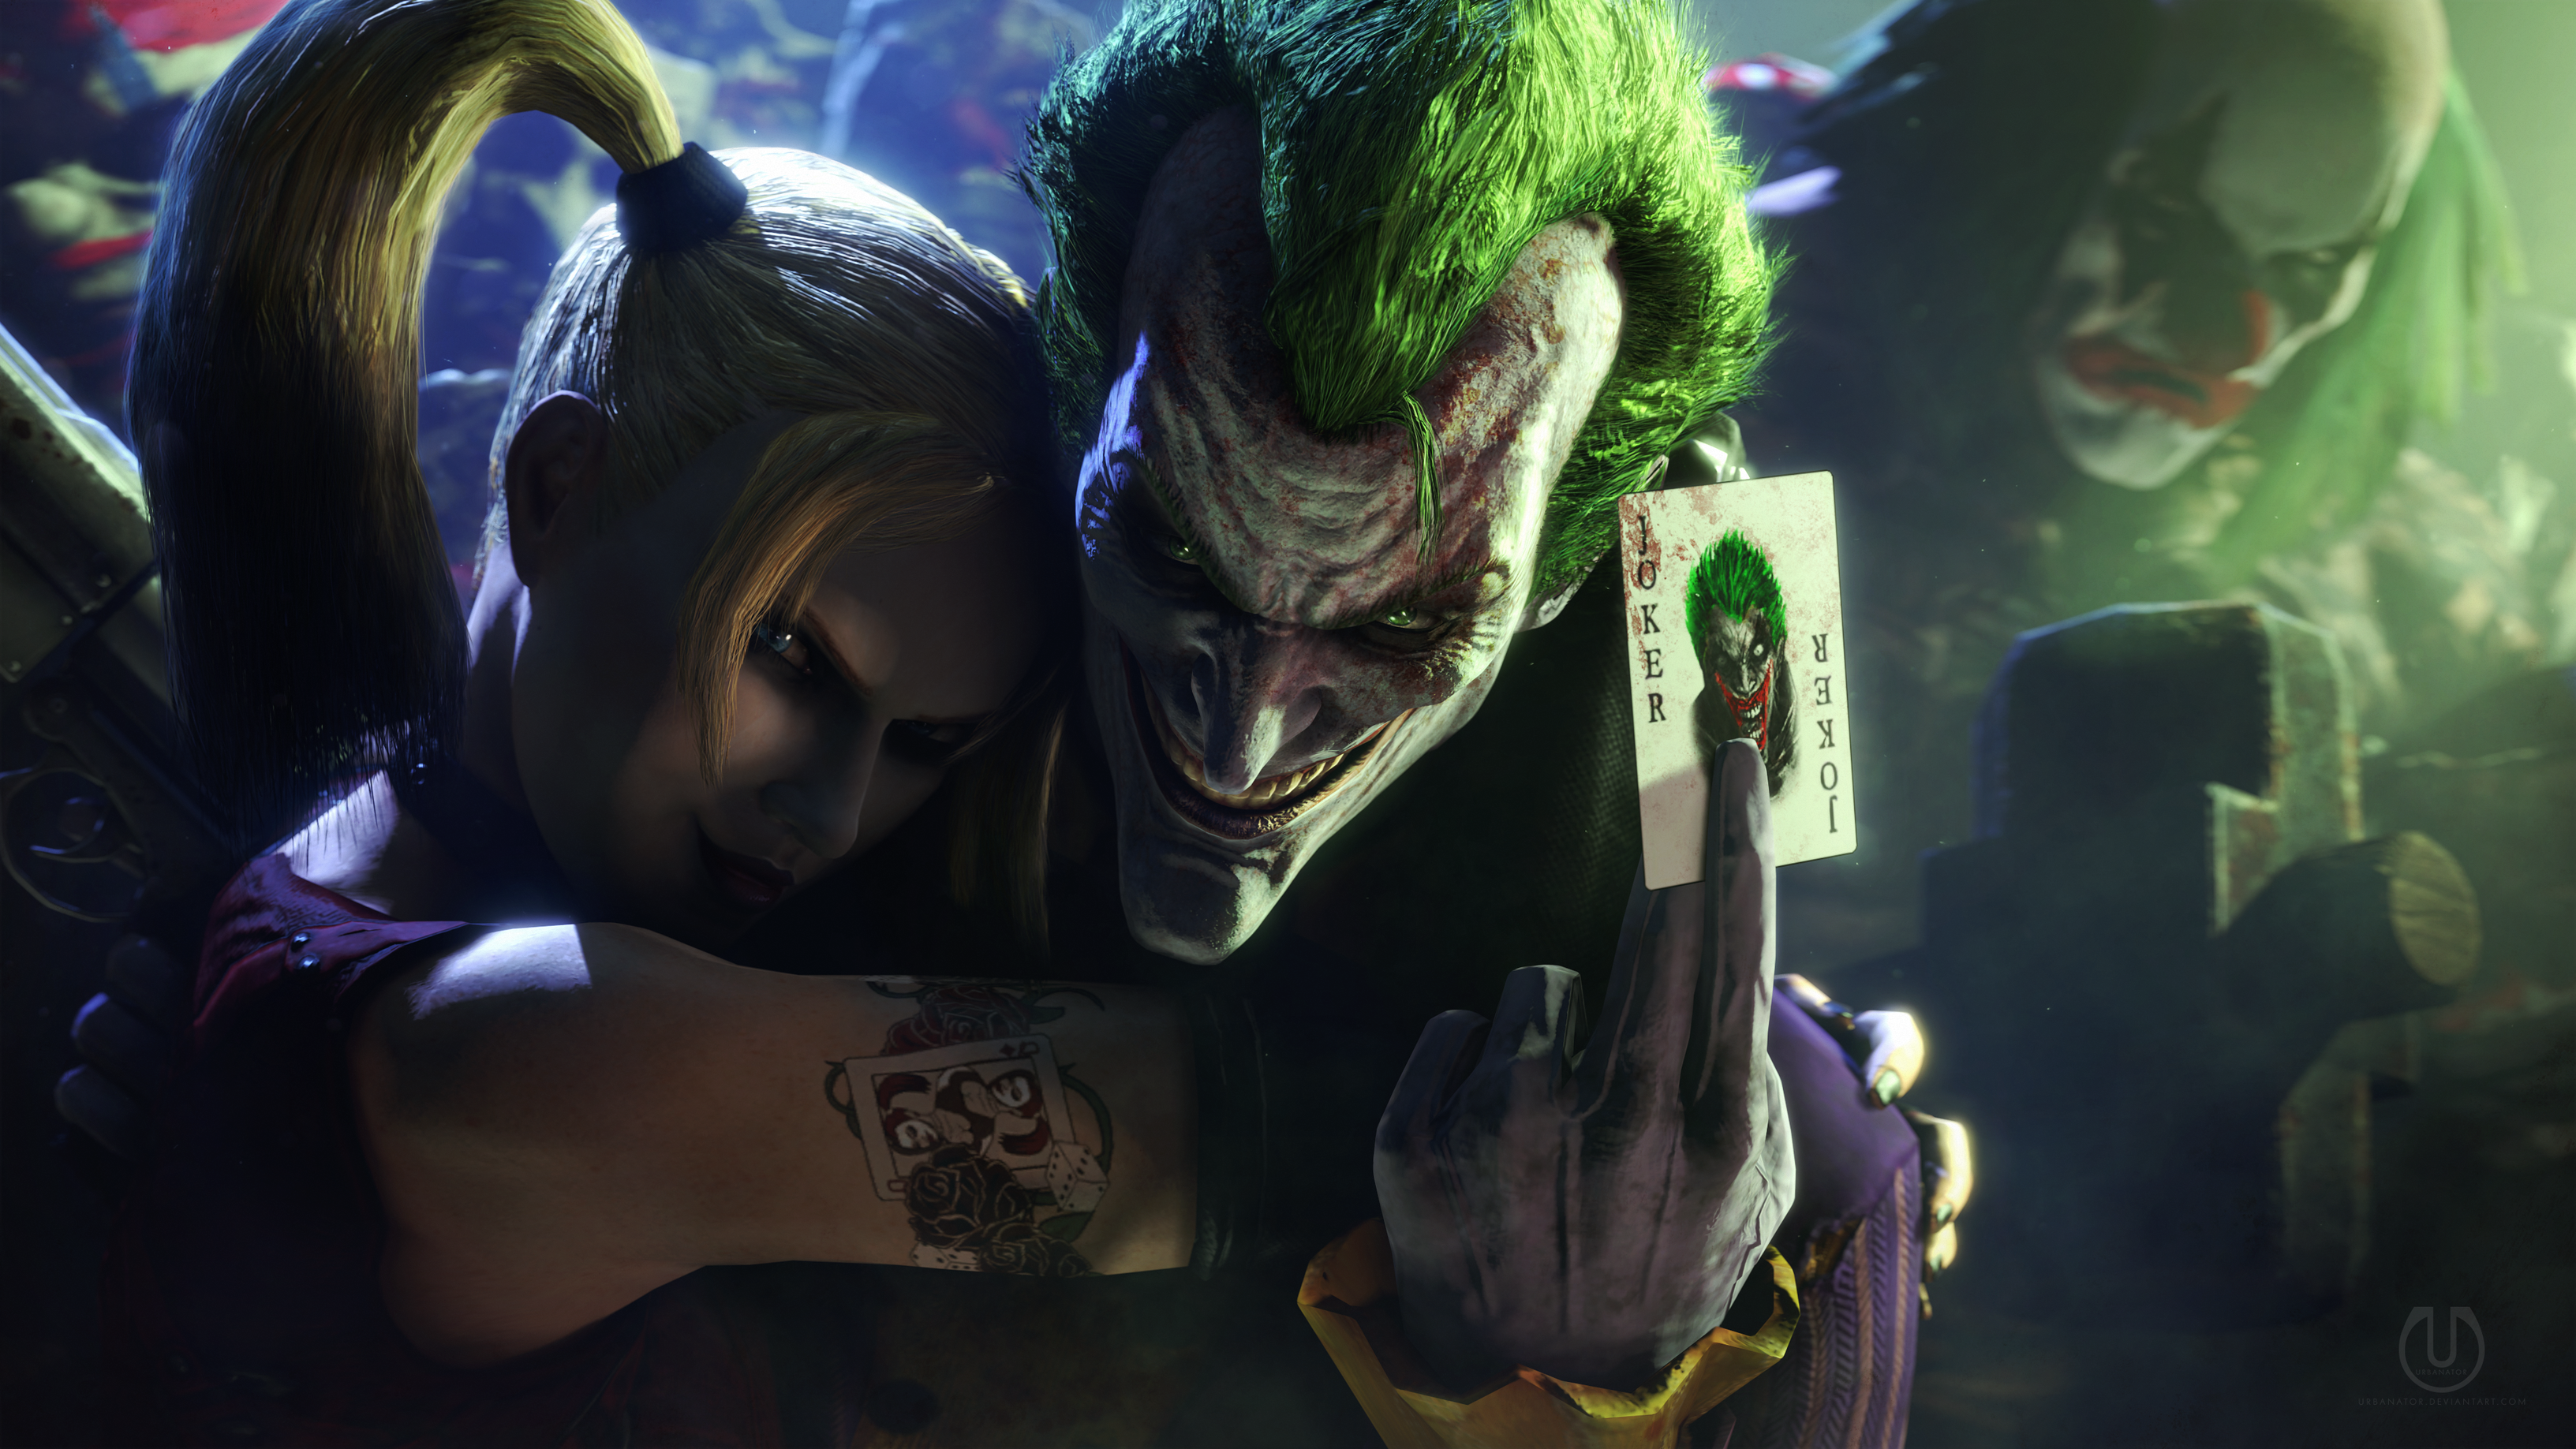 Joker and Harley Quinn | Batman by Urbanator